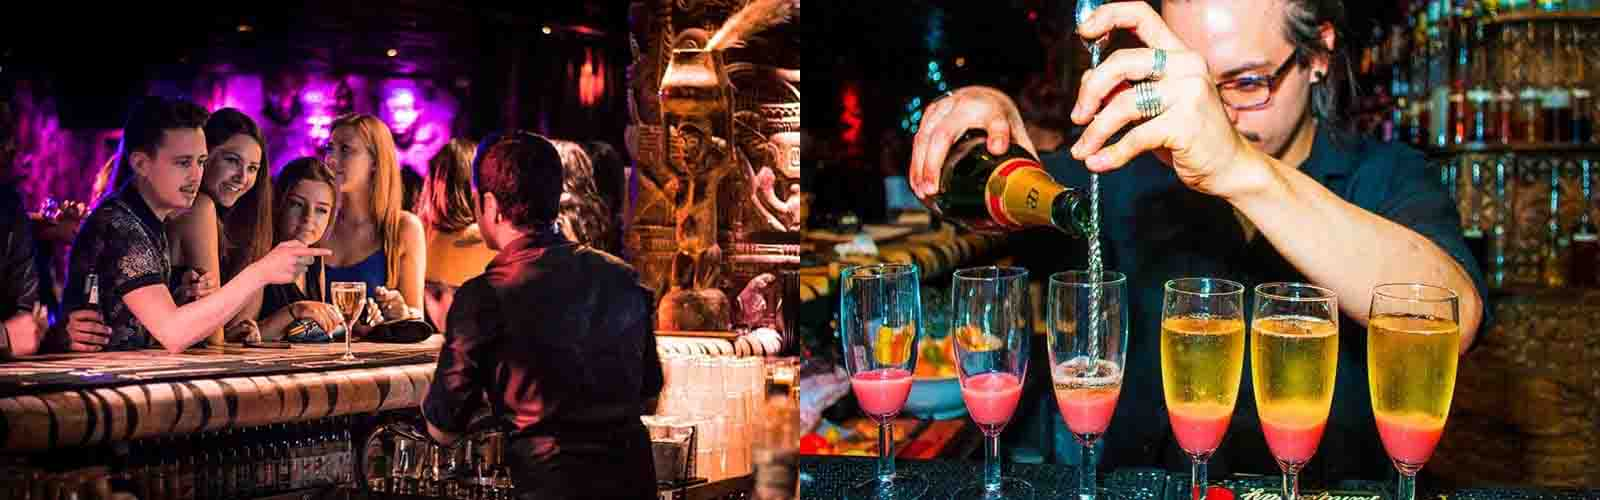 Enjoy dancing and tasteful drinks at Shaka Zulu